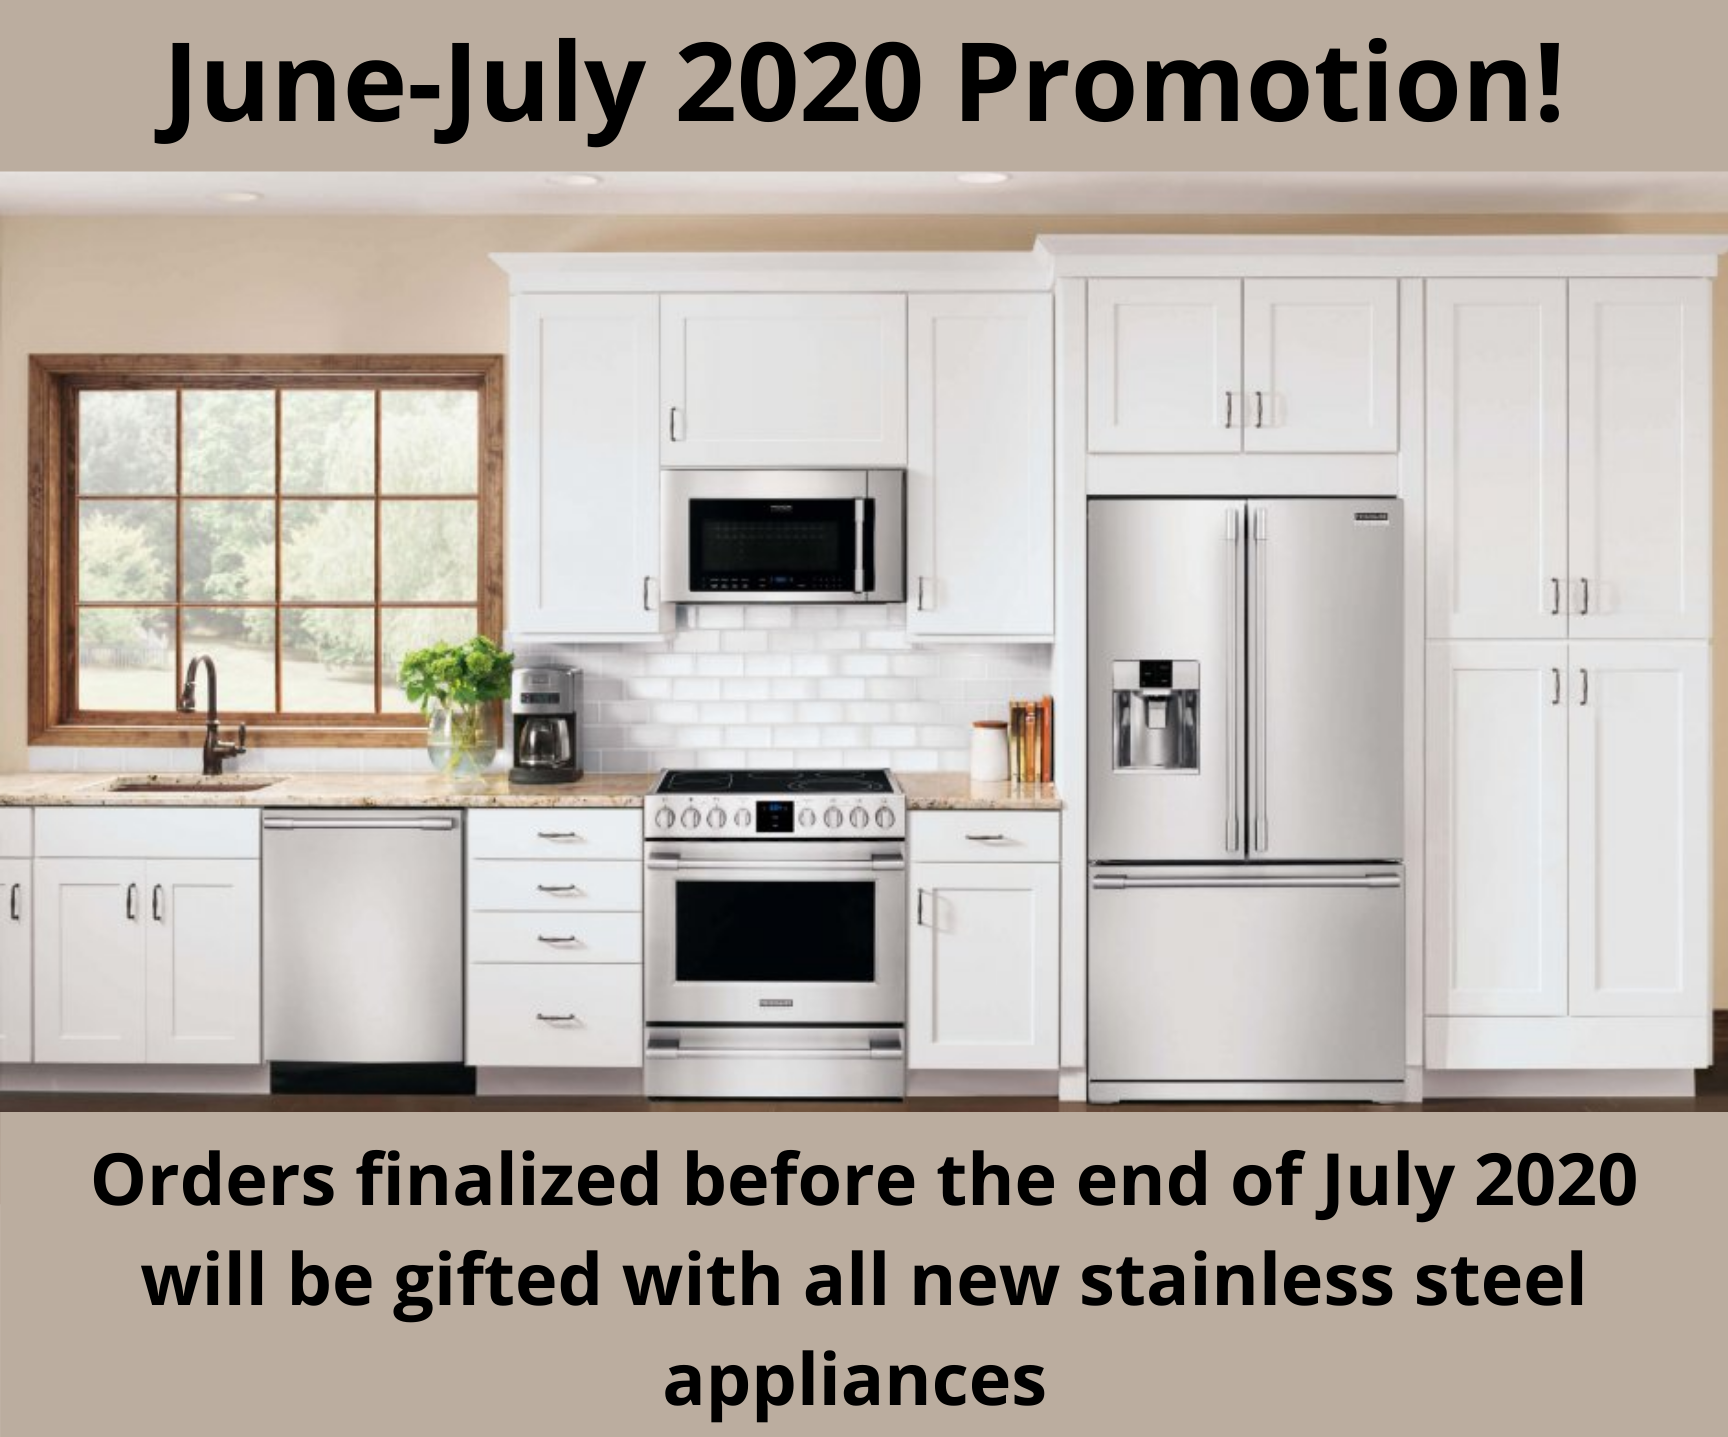 June-July 2020 Promotion!